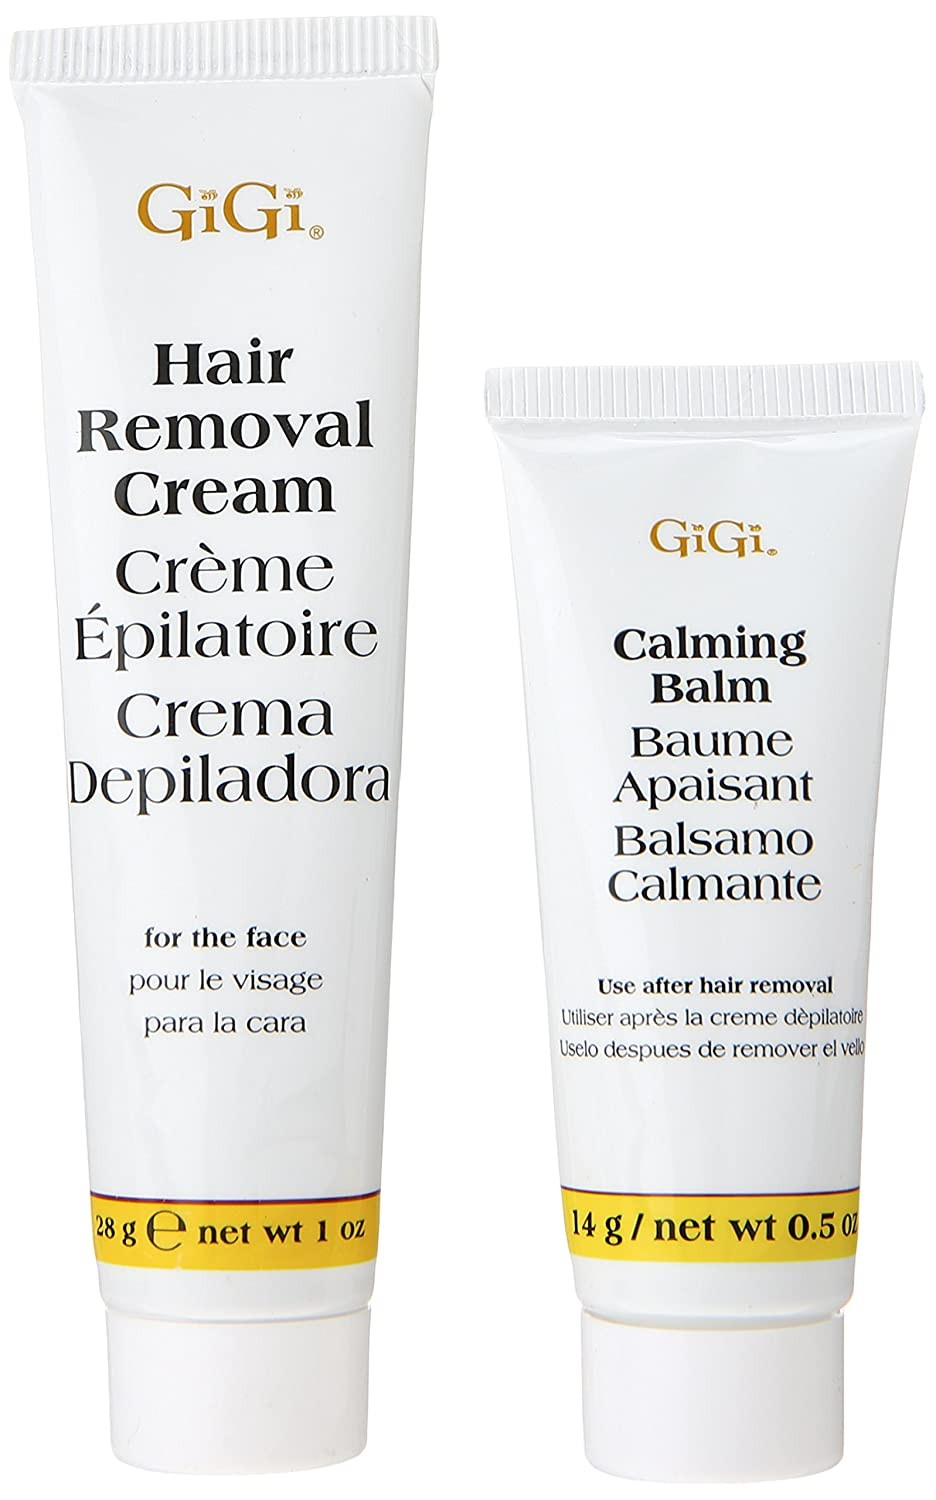 Amazon.com : Gigi Hair Removal Cream for The Face with Calming Balm (6 pack) : Beauty